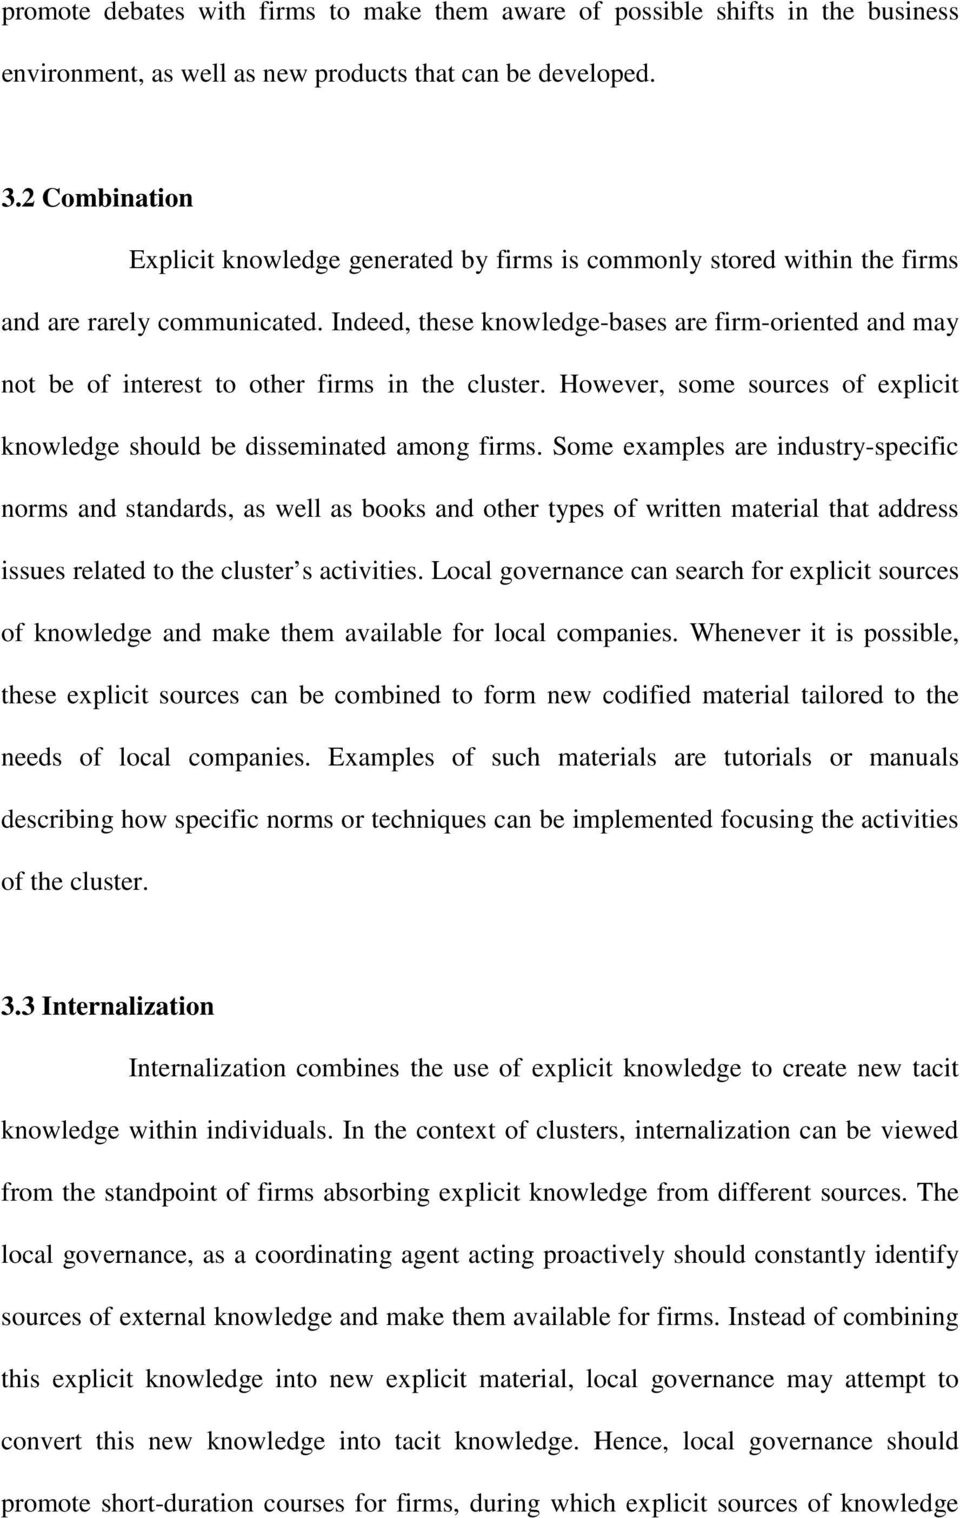 Indeed, these knowledge-bases are firm-oriented and may not be of interest to other firms in the cluster. However, some sources of explicit knowledge should be disseminated among firms.